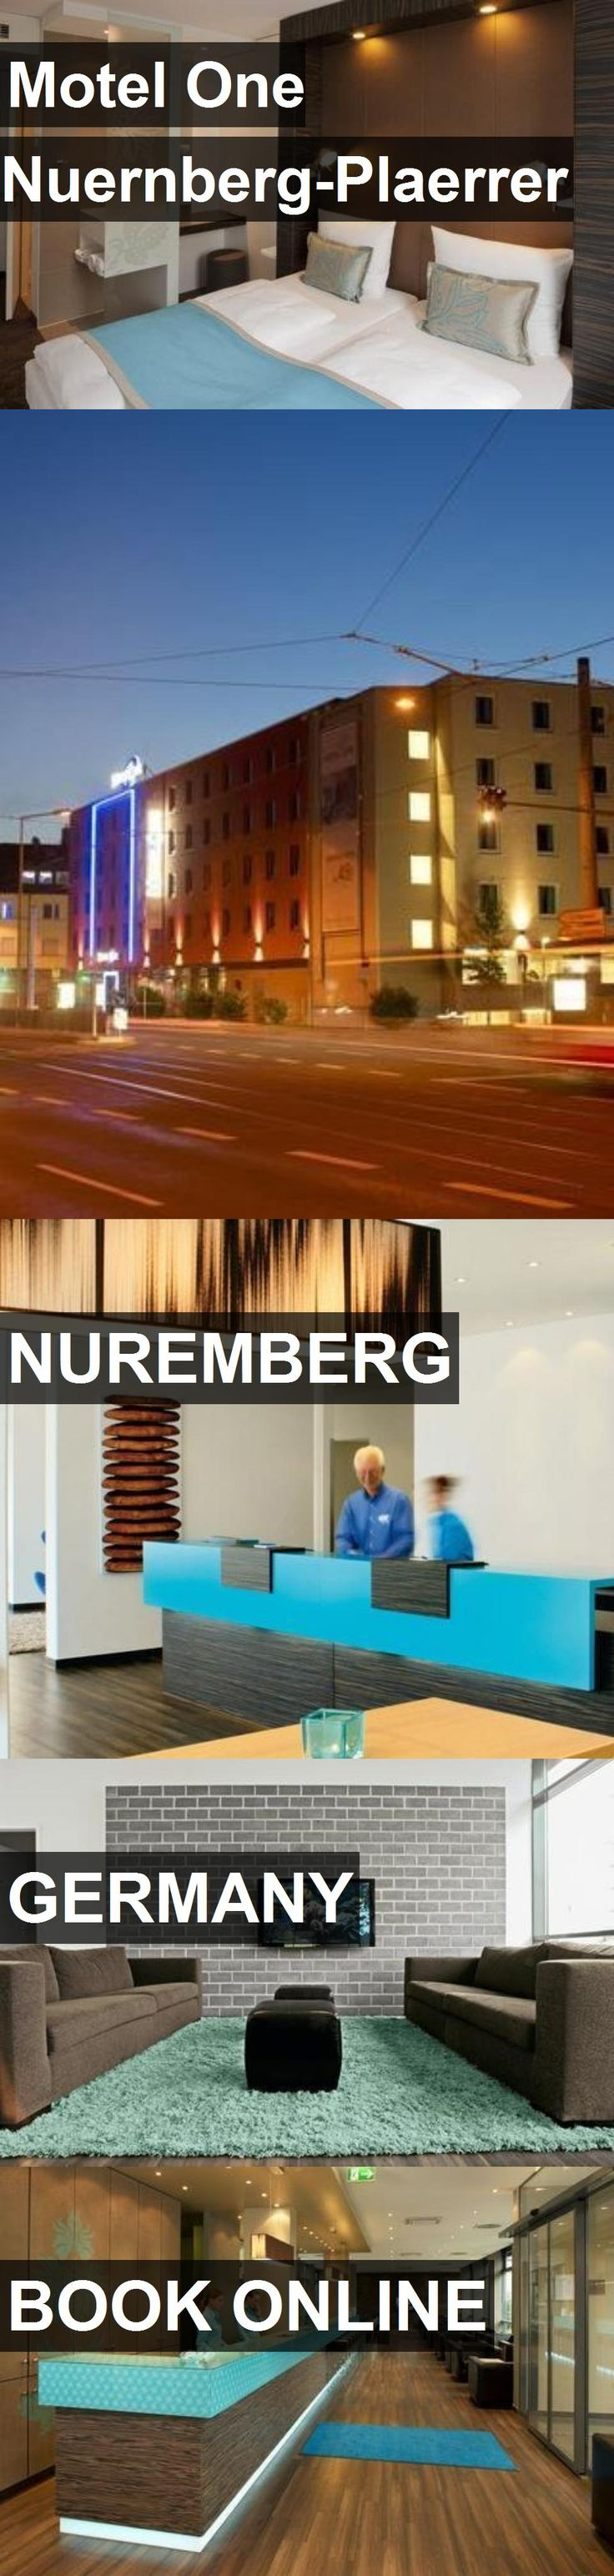 Hotel Motel One Nuernberg-Plaerrer in Nuremberg, Germany. For more information, photos, reviews and best prices please follow the link. #Germany #Nuremberg #travel #vacation #hotel